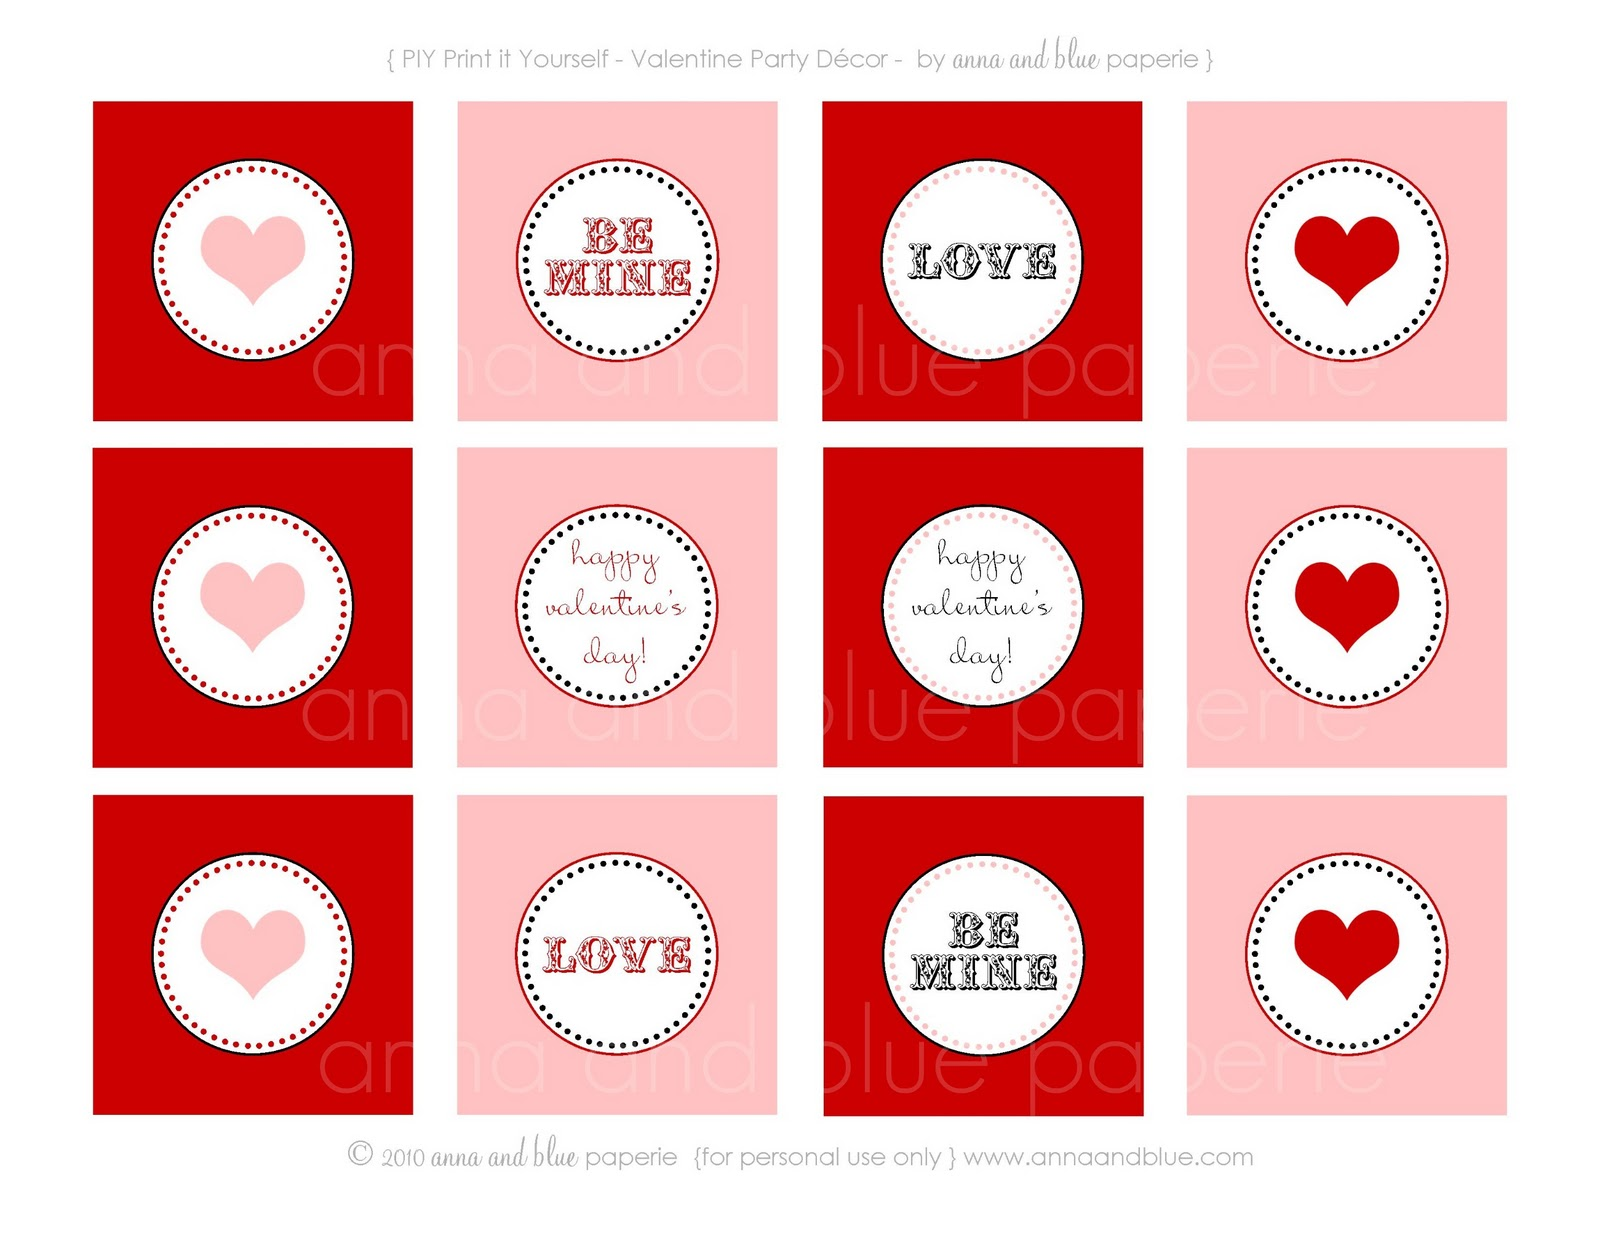 anna and blue paperie: {Free Printable} I Heart You Valentine's